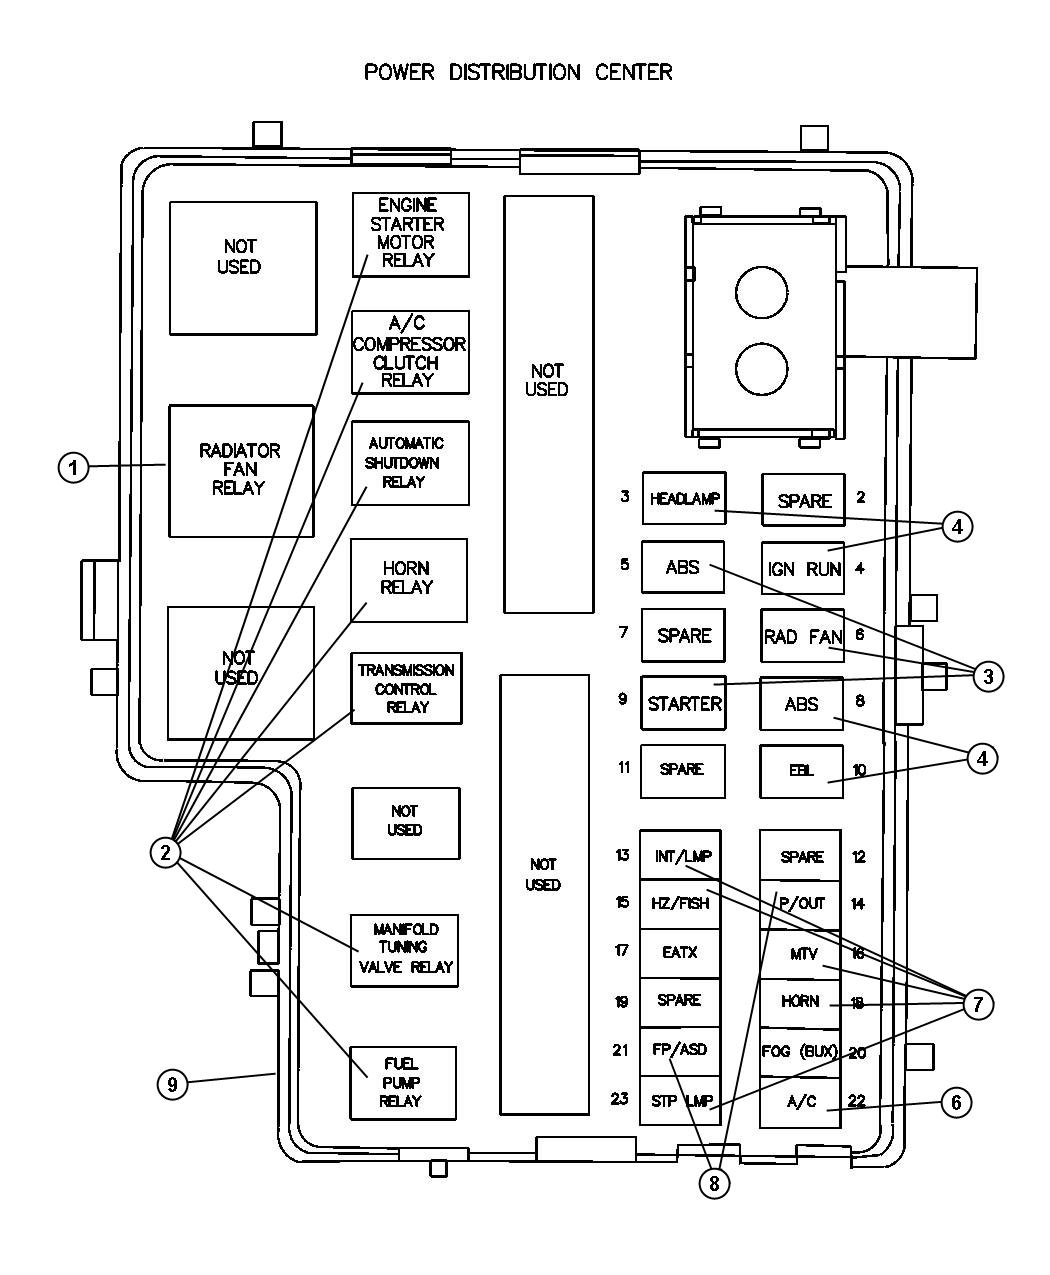 hight resolution of 2000 dodge neon fuse box diagram wiring diagram autovehicle